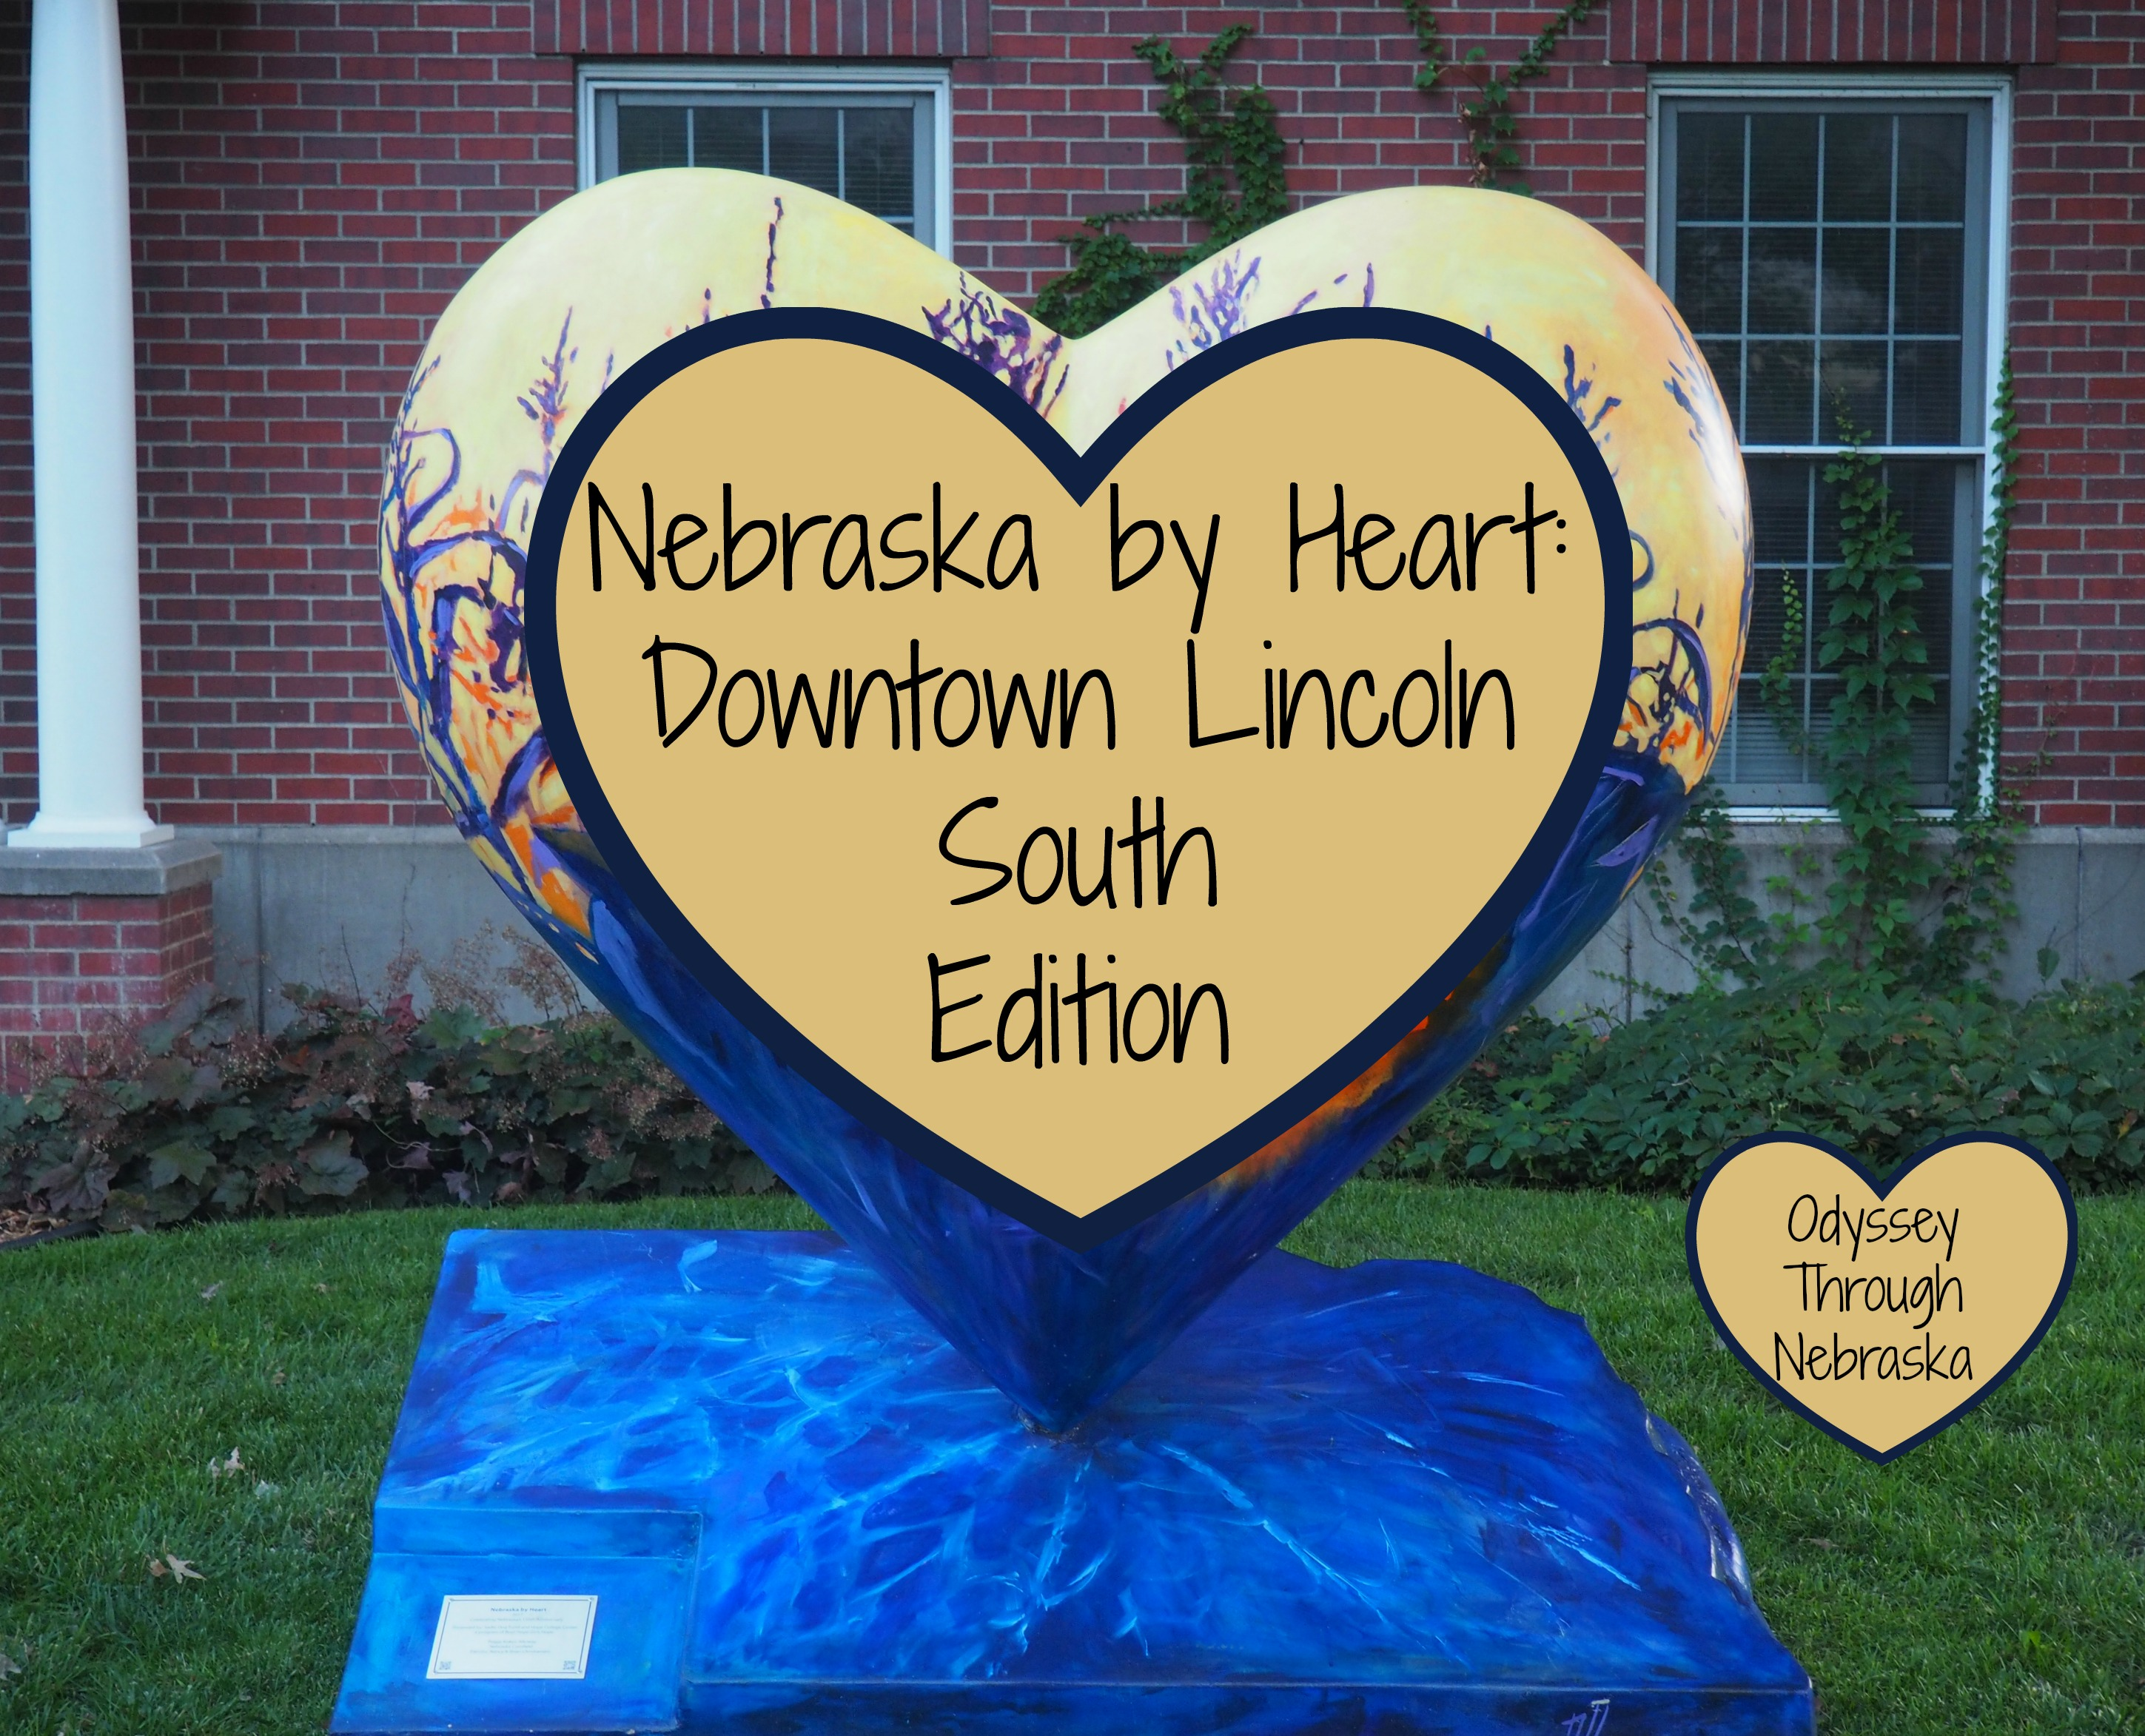 Nebraska by Heart Downtown South